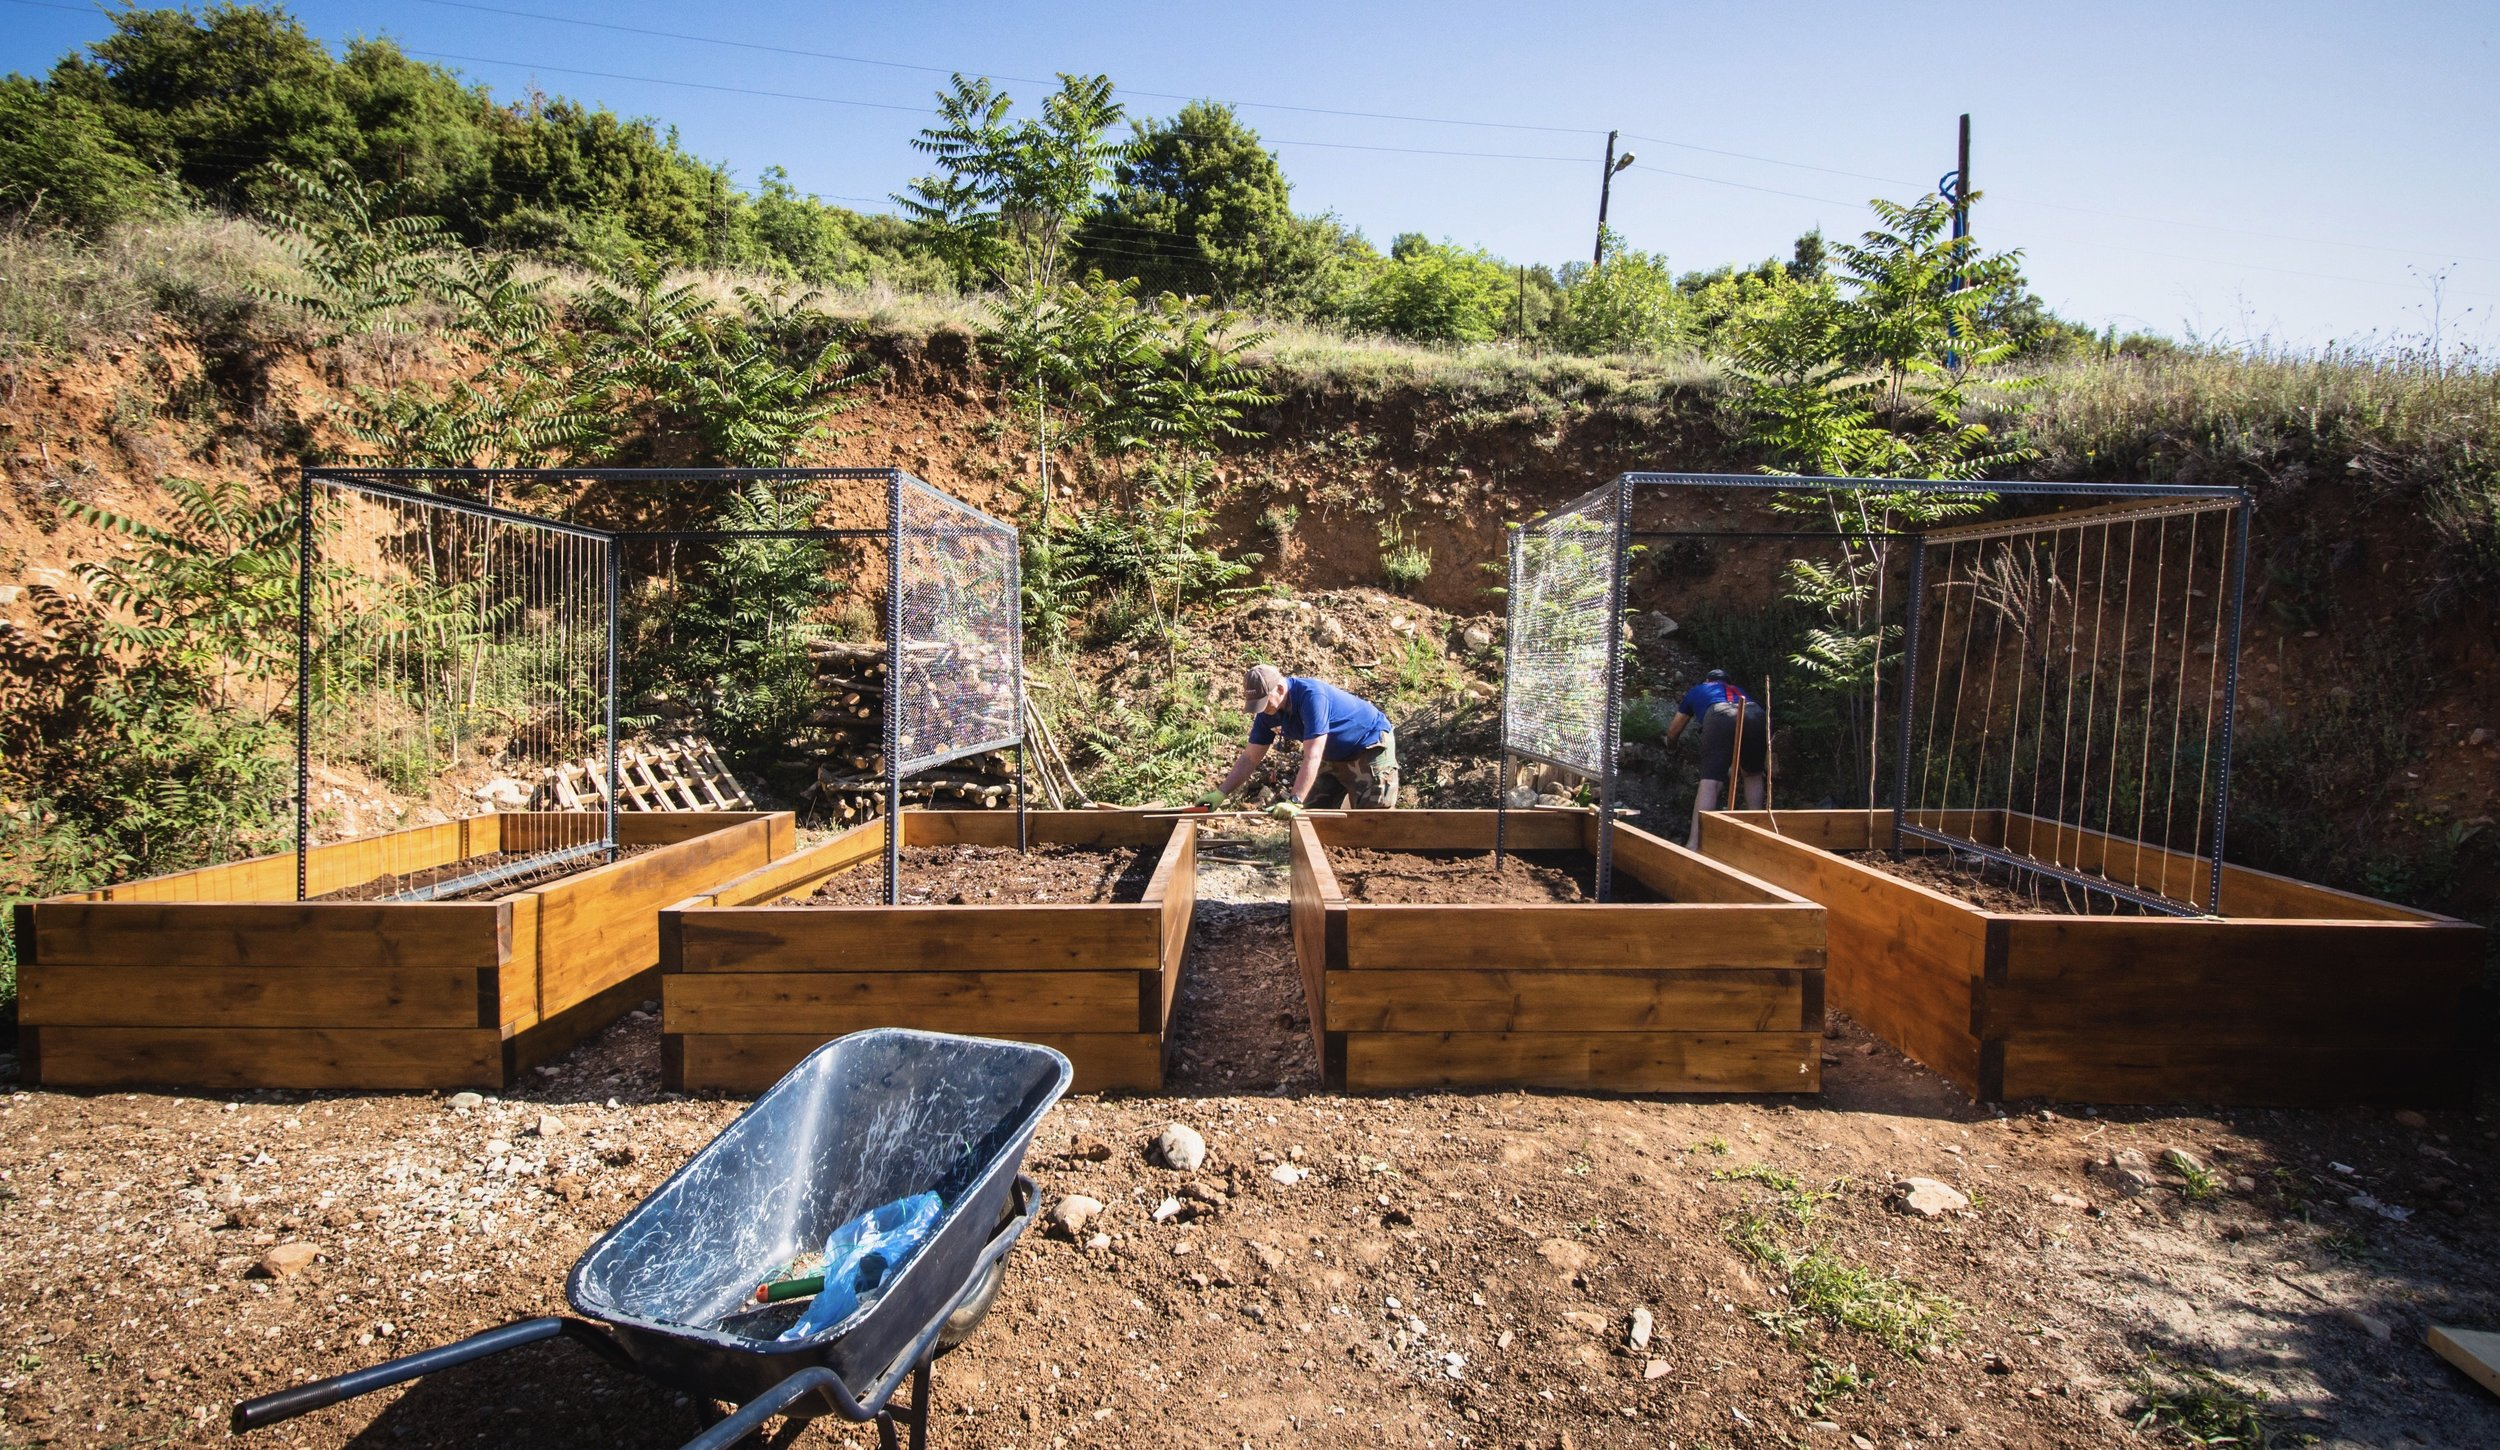 Steve and Simon set to work building frames and a 2 tiered foraging garden for herbs (at the back)